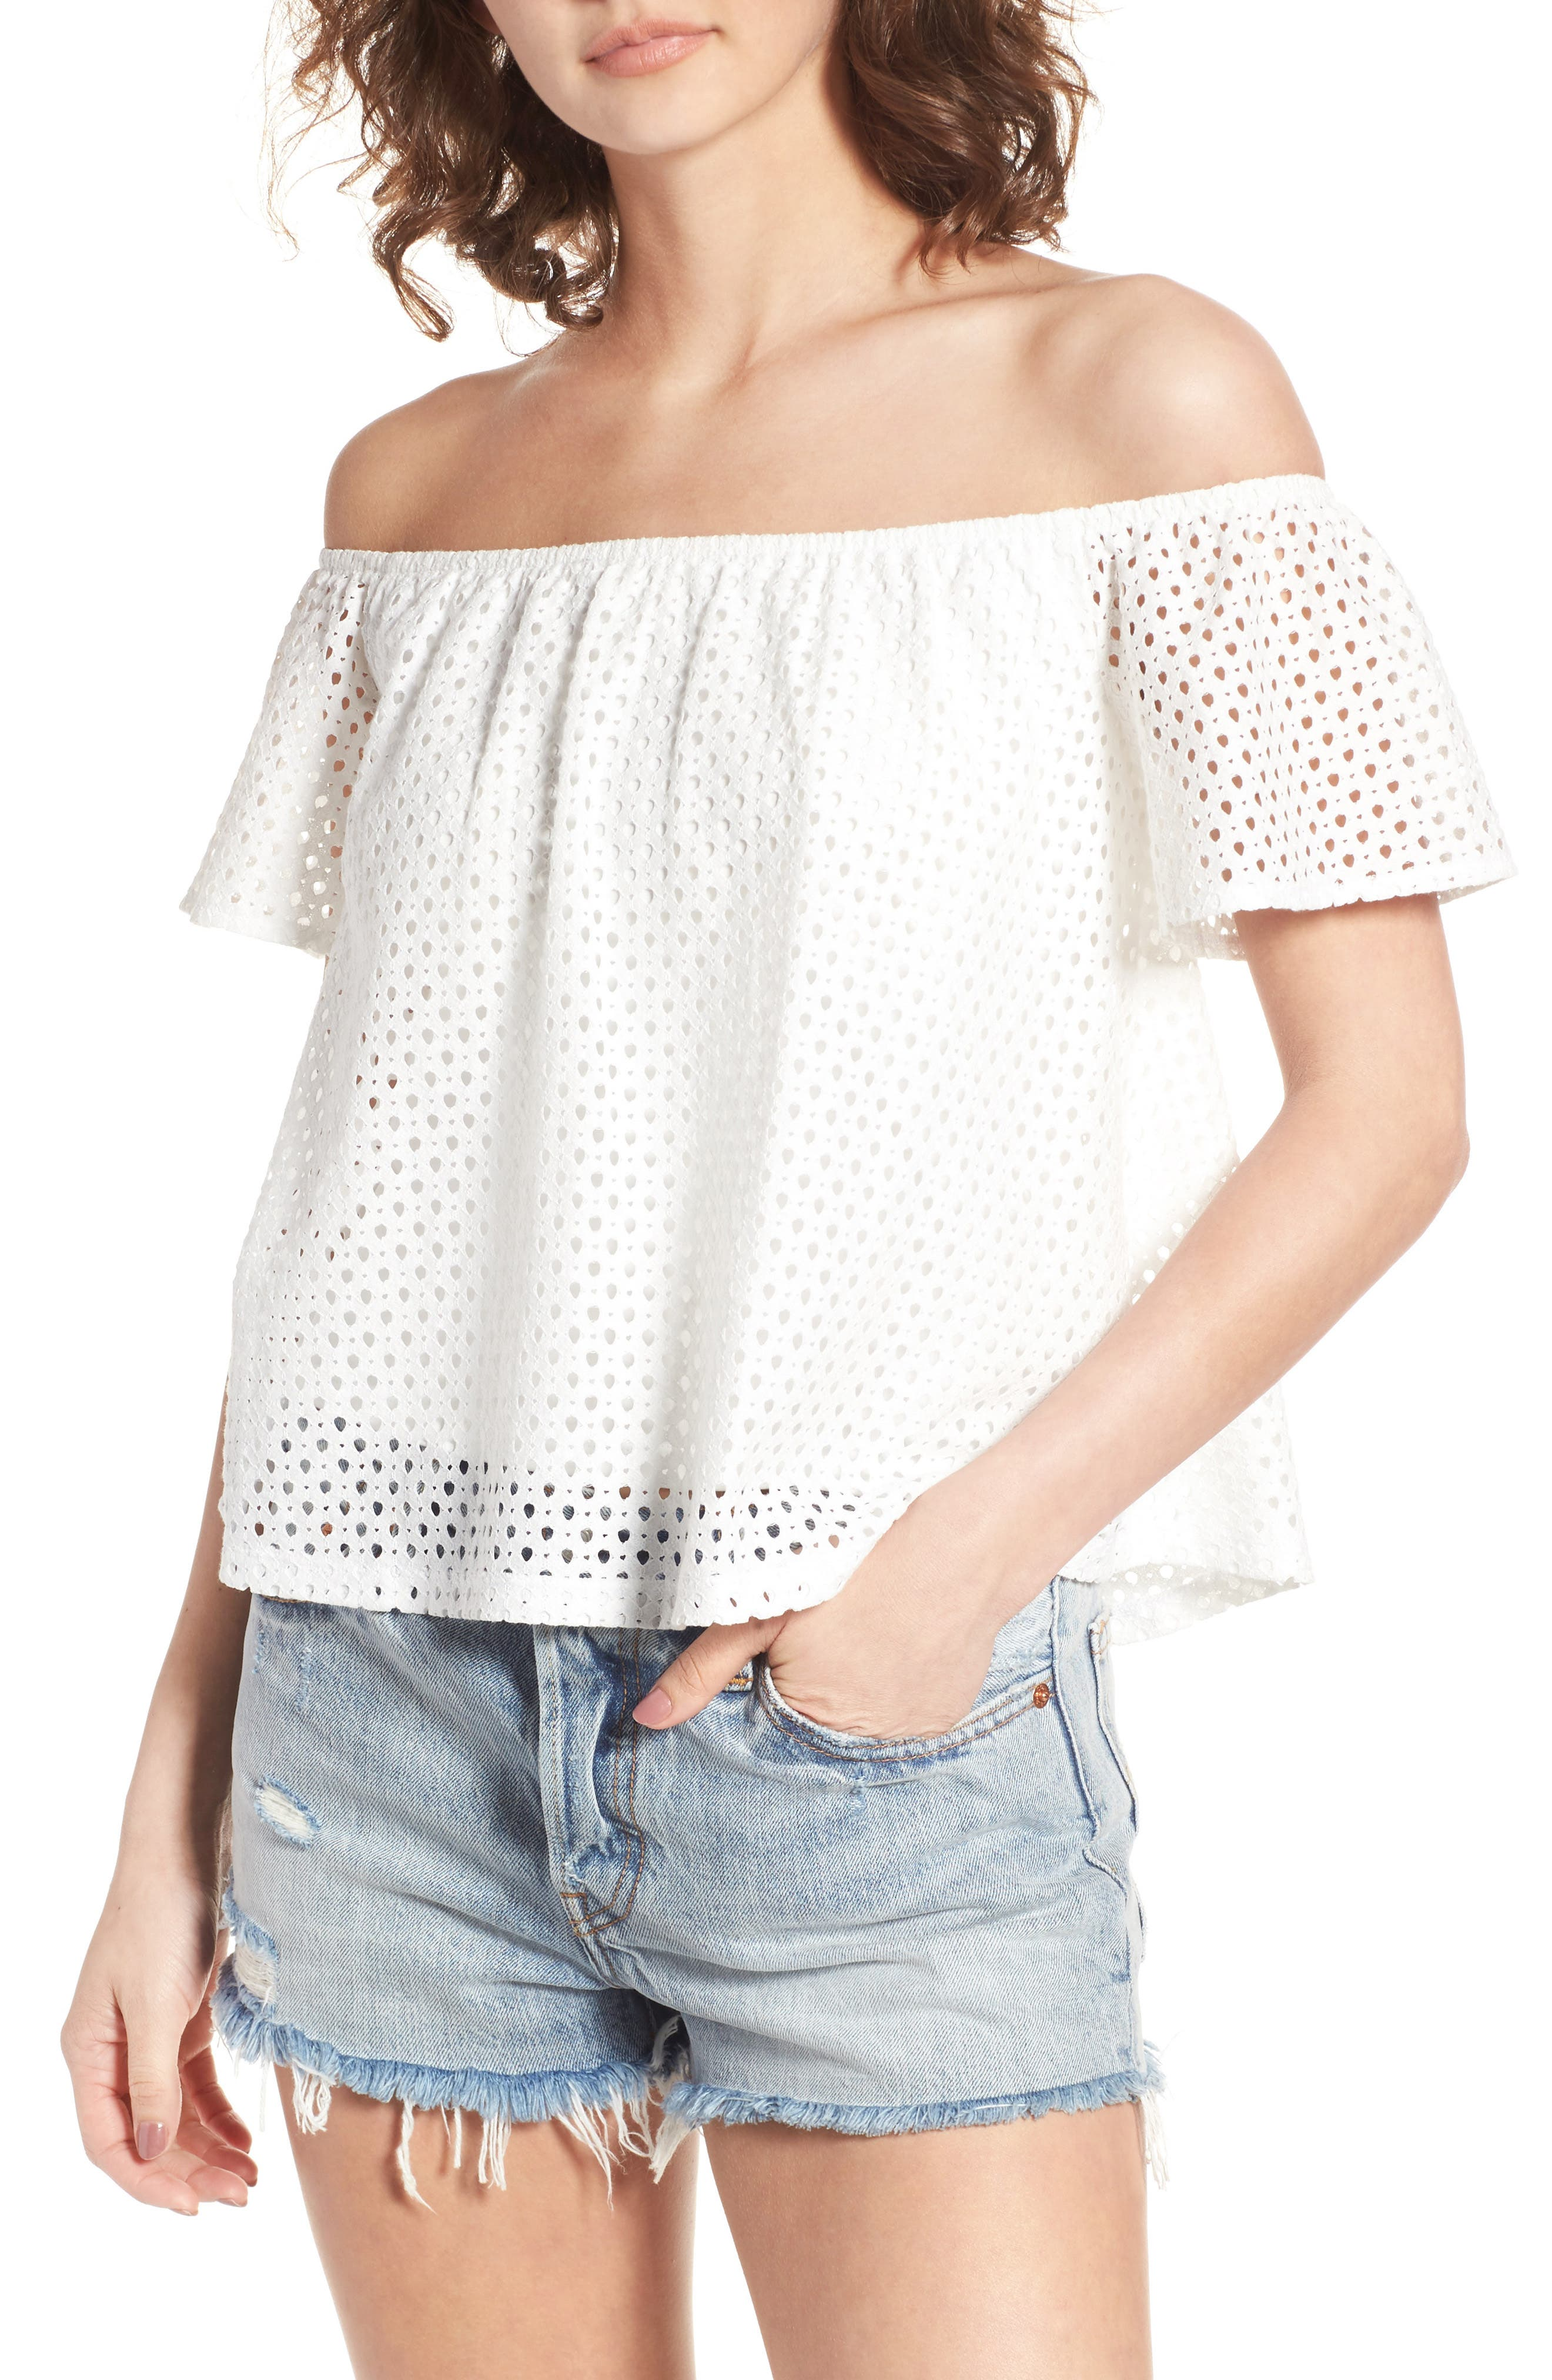 Alternate Image 1 Selected - BP. Eyelet Off the Shoulder Top